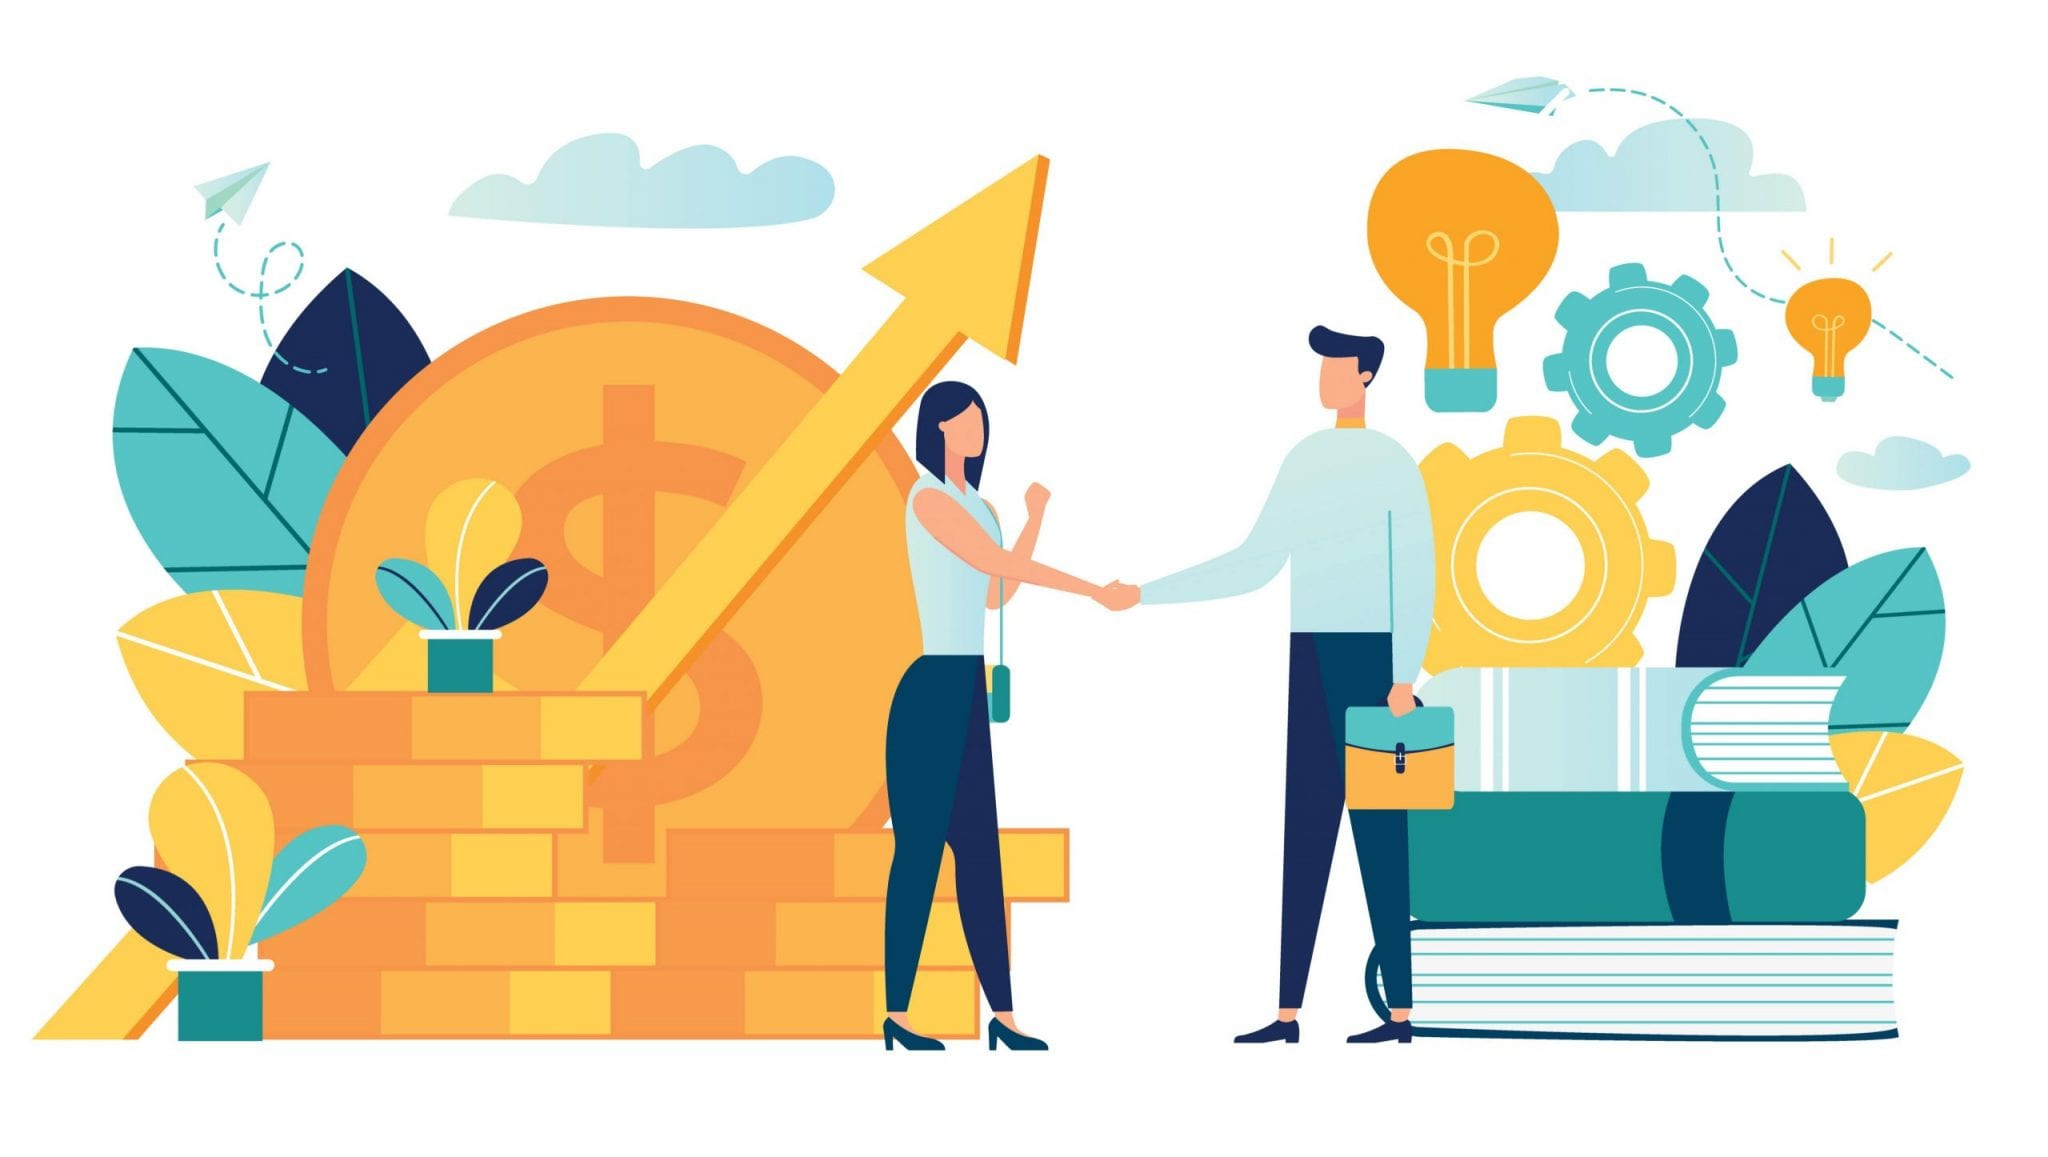 Vector Illustration on White Background. Business Porters a Successful Team. The Investor Holds Money in Ideas, Financing of Creative Projects, Woman and Man Business Handshake